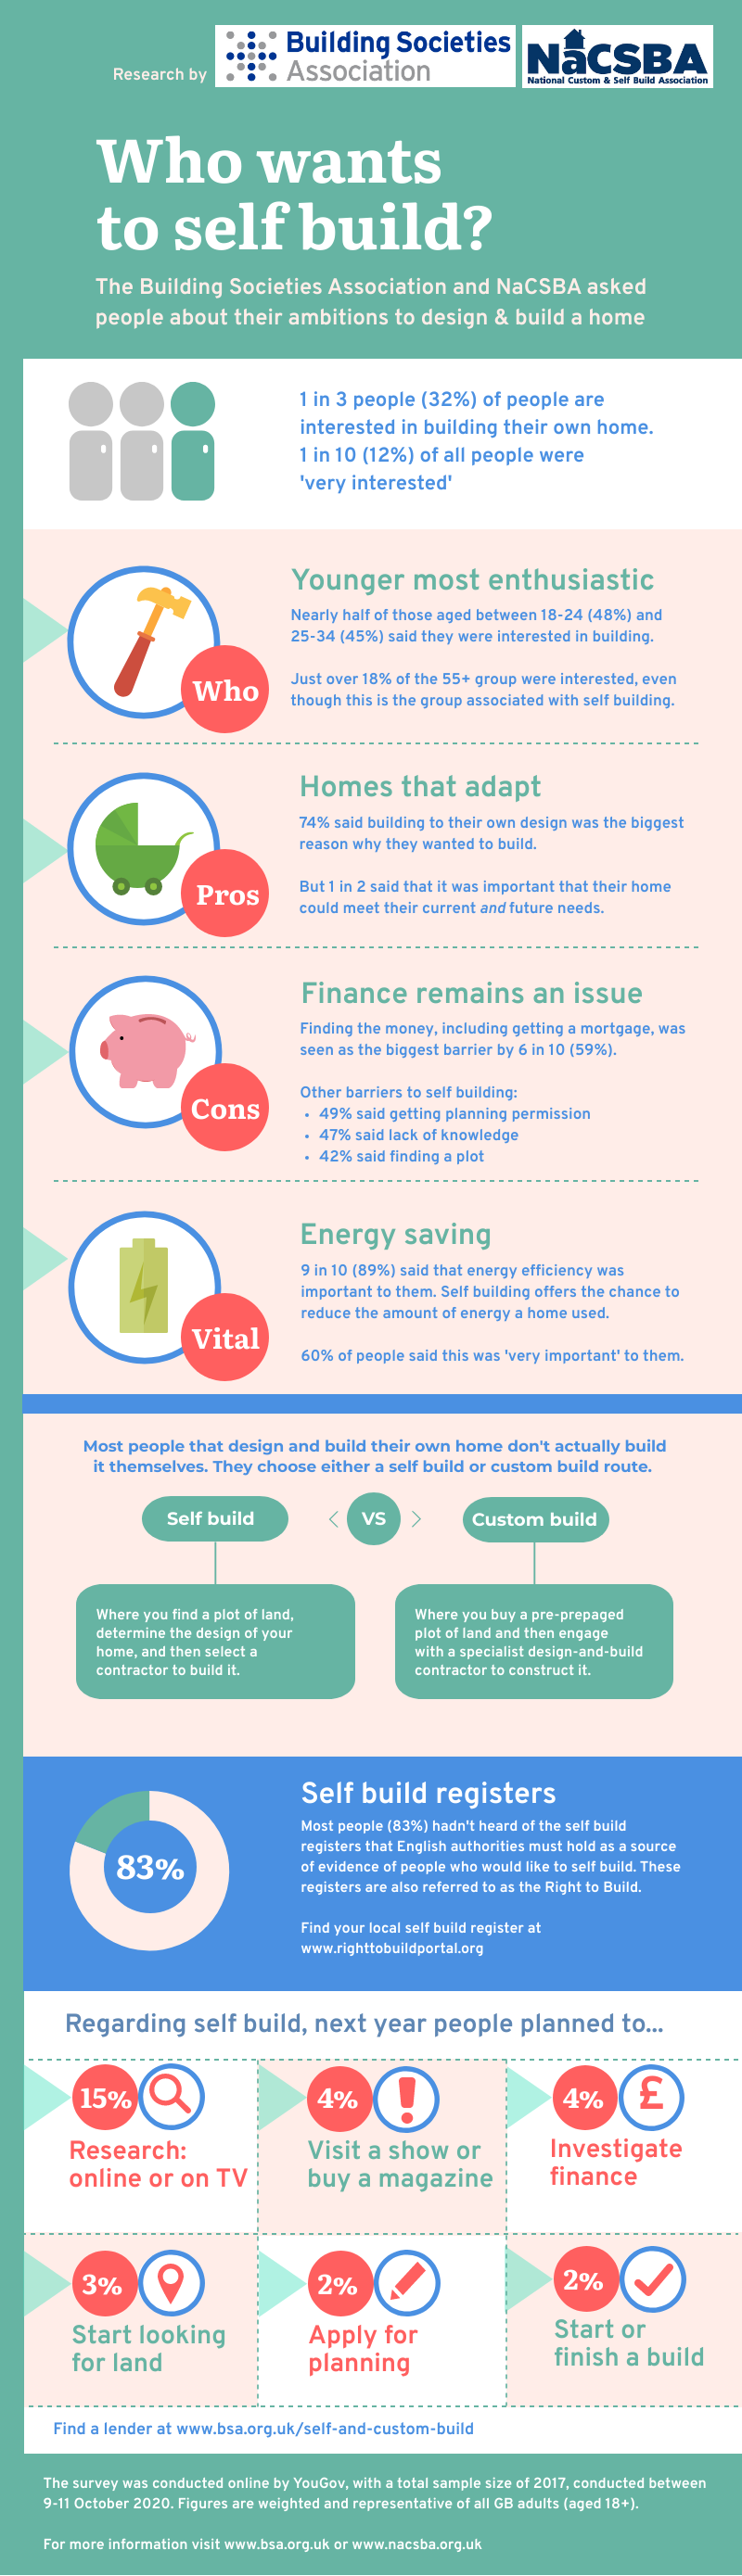 Who wants to Self Build infographic